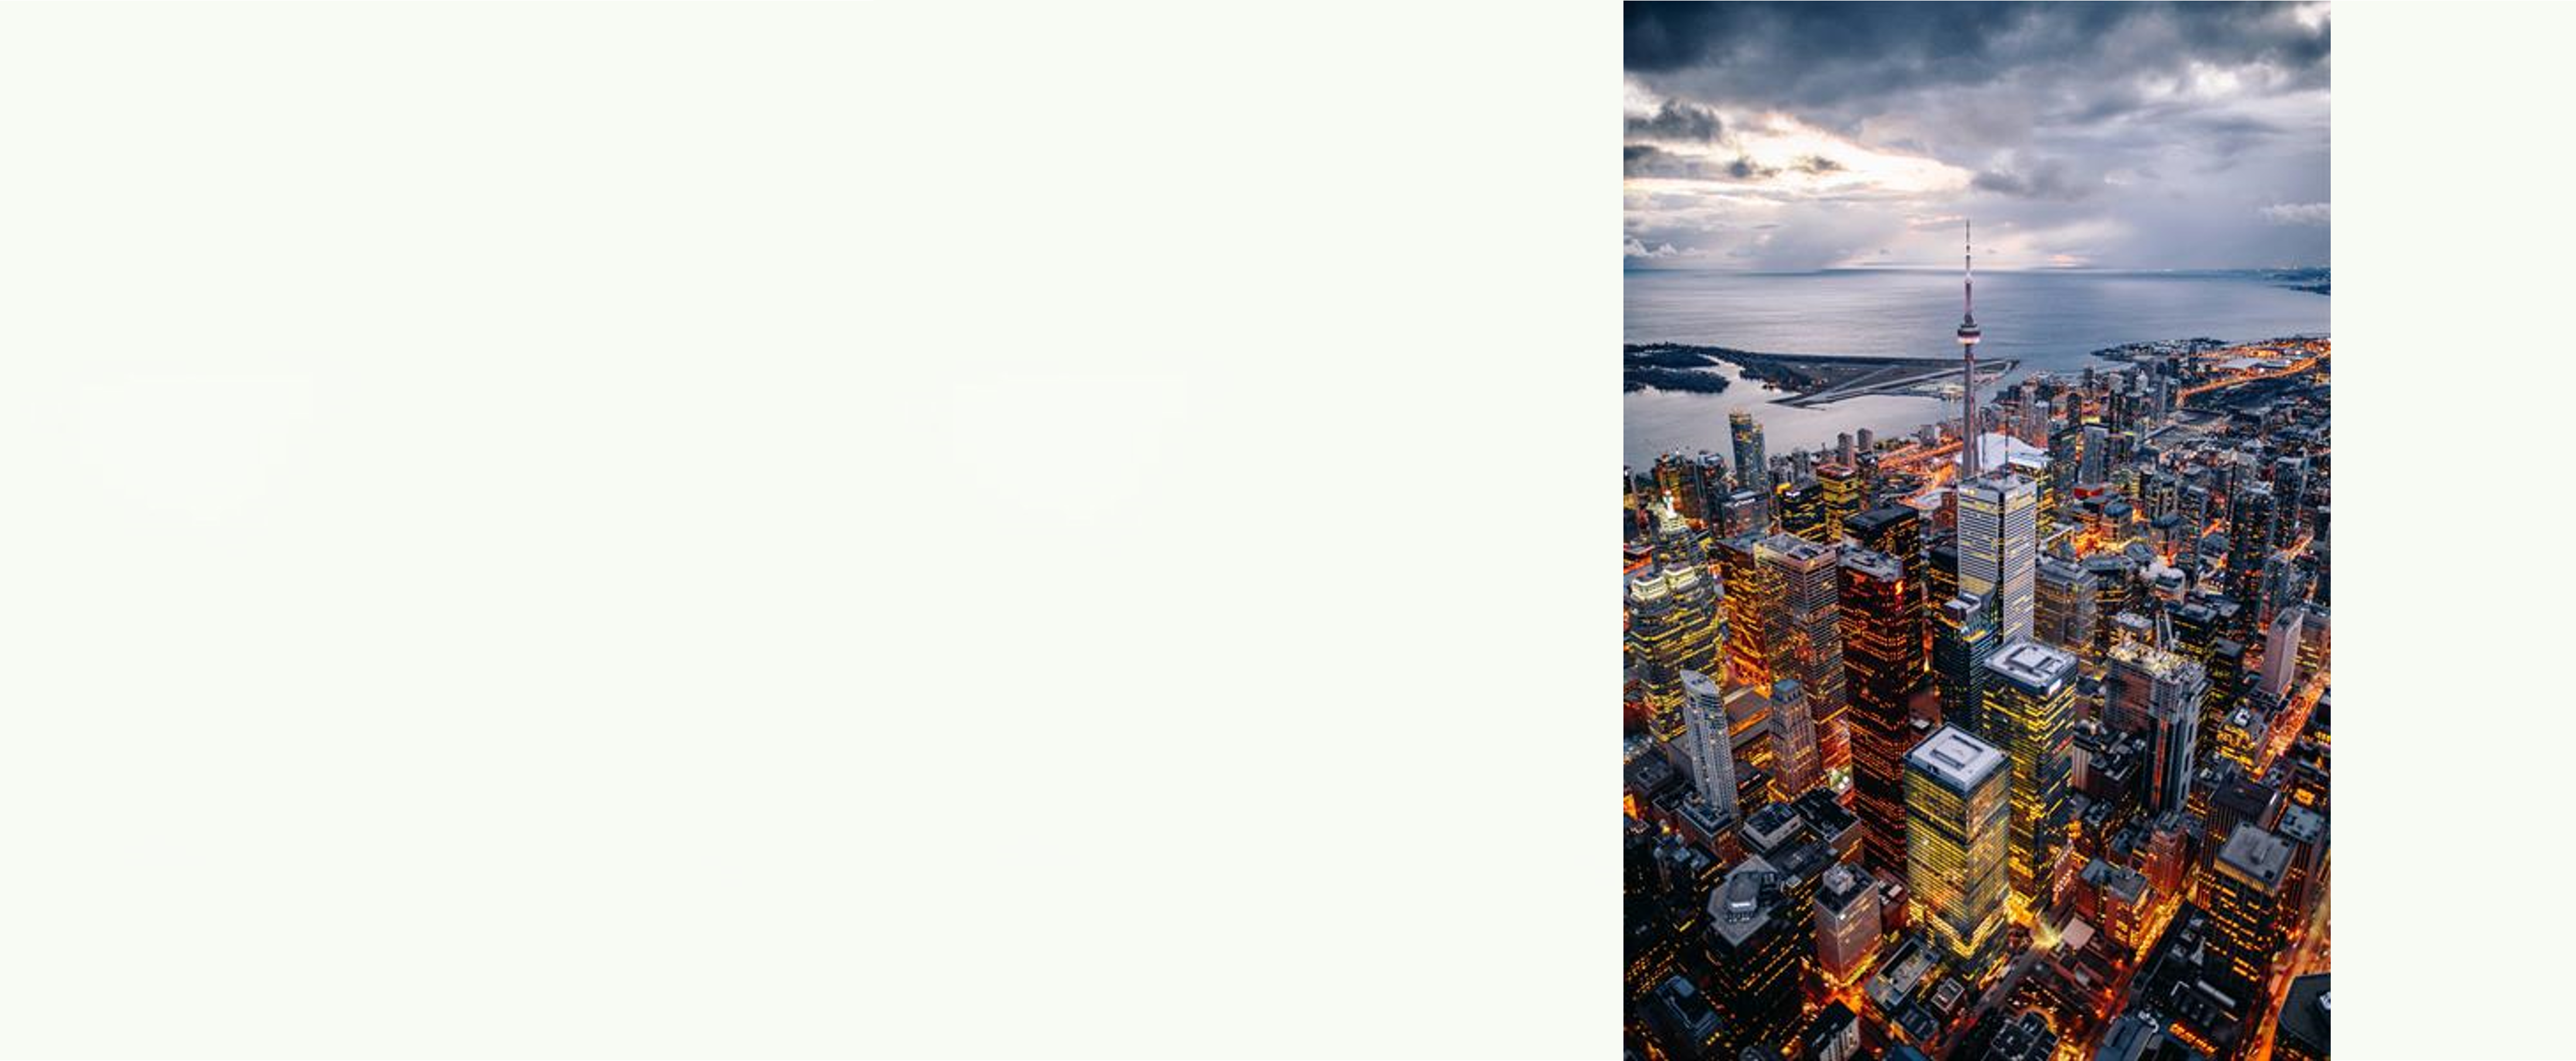 Slider background with Toronto Skyview to the right